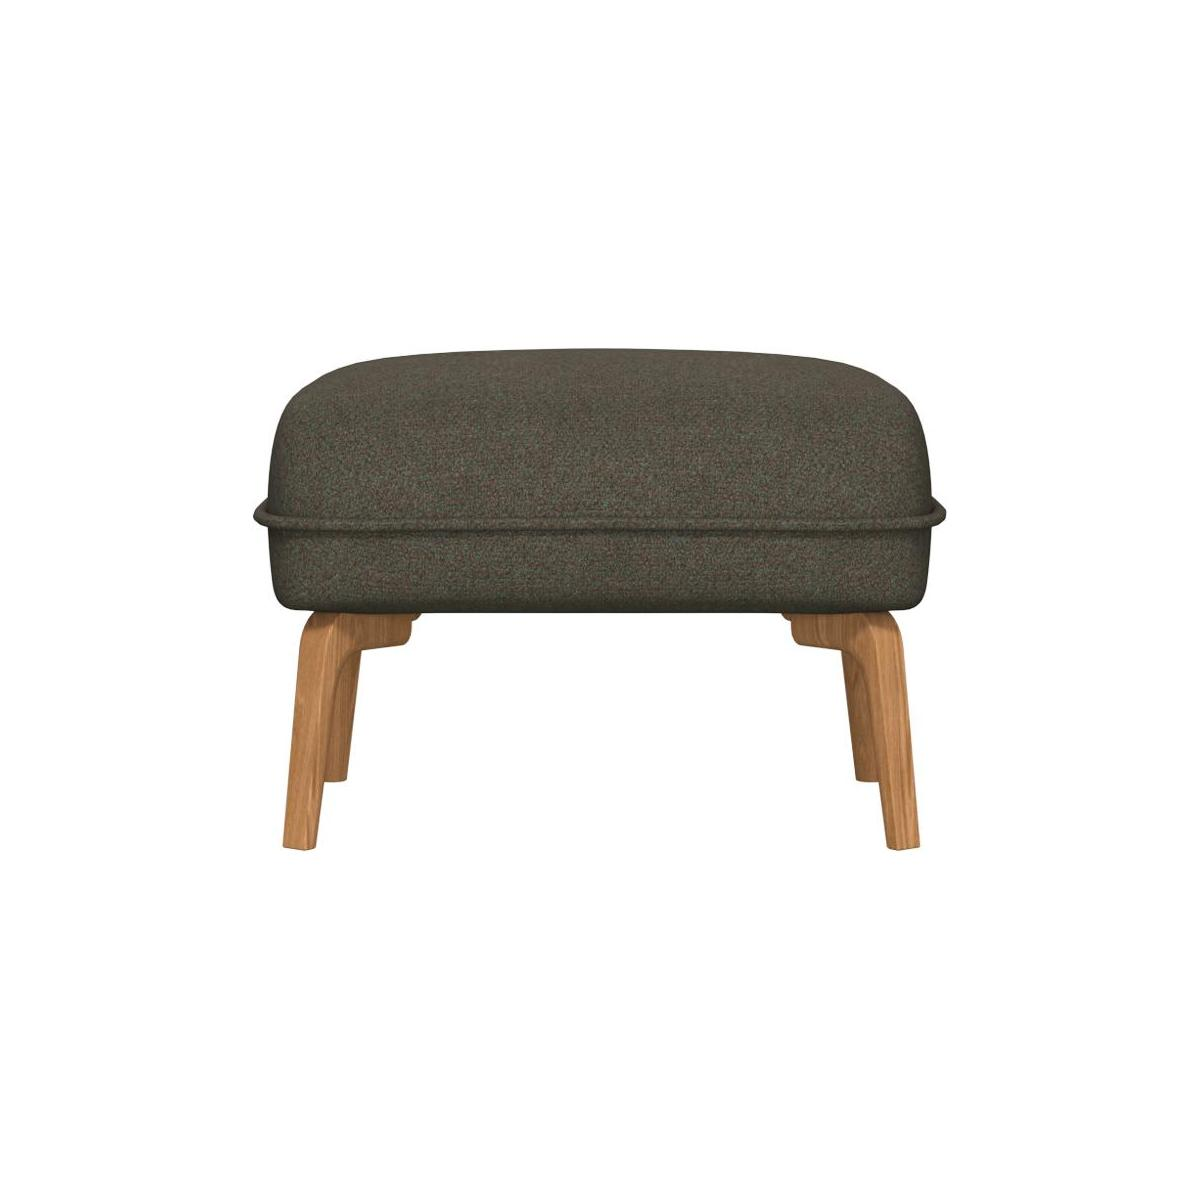 Footstool in Lecce fabric, slade grey and natural oak feet n°2